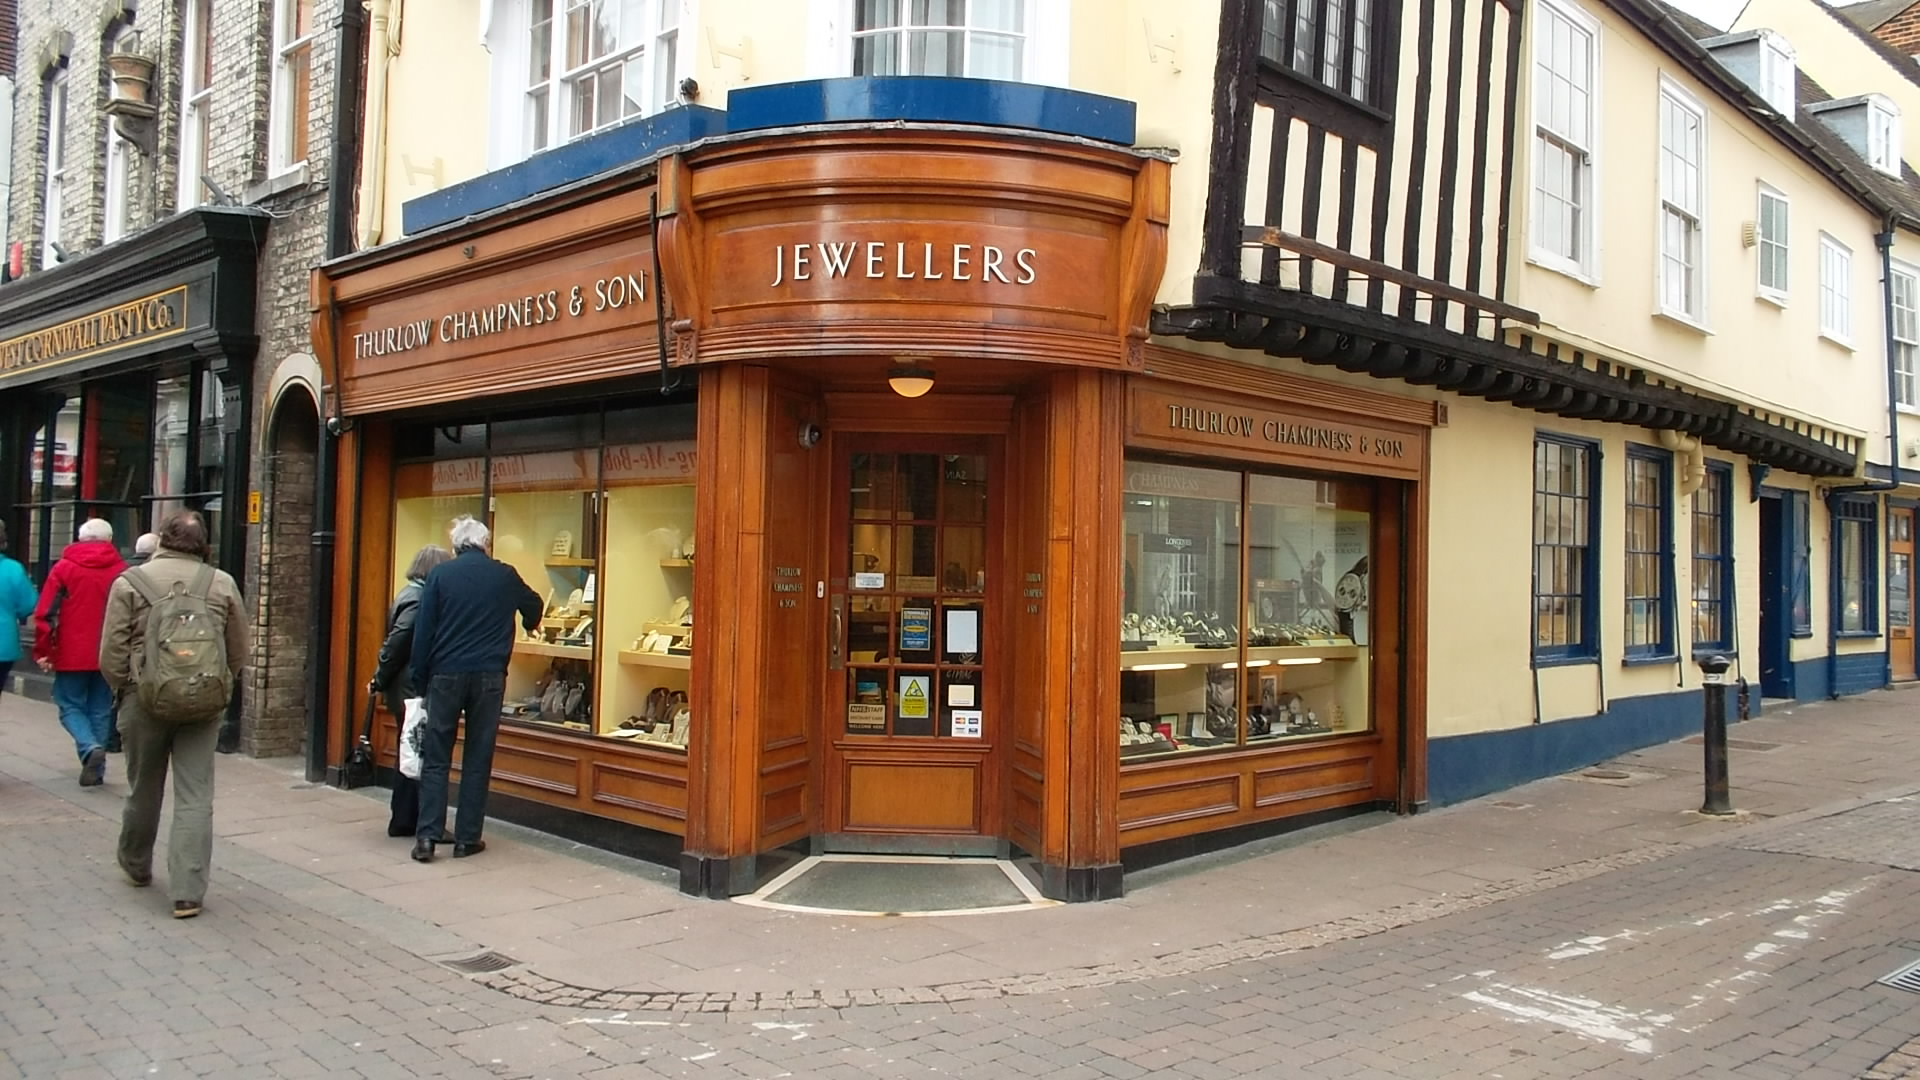 Thurlow Champness Jewellers has been providing the very best in luxury goods for over 100 years. We are located in the heart of historic Bury St Edmunds, 'under the clock' in Abbeygate Street, a short distance from the town centre and on route to the famous Abbey Gardens. The main shop carries a wide range of prestige brand names, such as Rolex, Bremont, Longines, Citizen, Portfolio of Fine Diamonds, Mikimoto, Fope, Georg Jensen, Marco Bicego, SHO Fine Jewellery, Links of London, Thomas Sabo, Rachel Galley, Babette Wasserman, Baccarat, Breuning and Lalique..